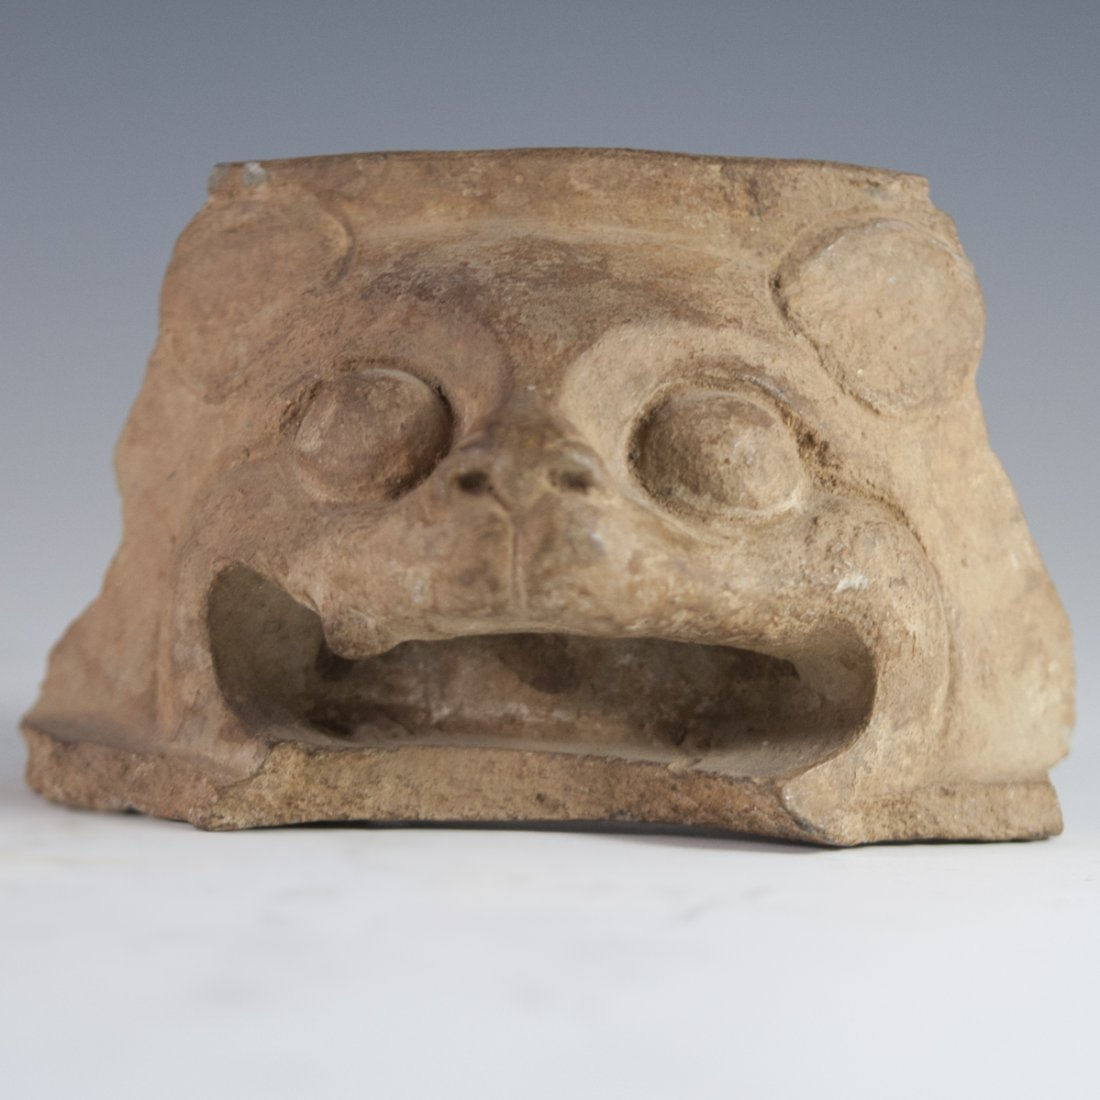 Probably Pre-Columbian Mayan Pottery